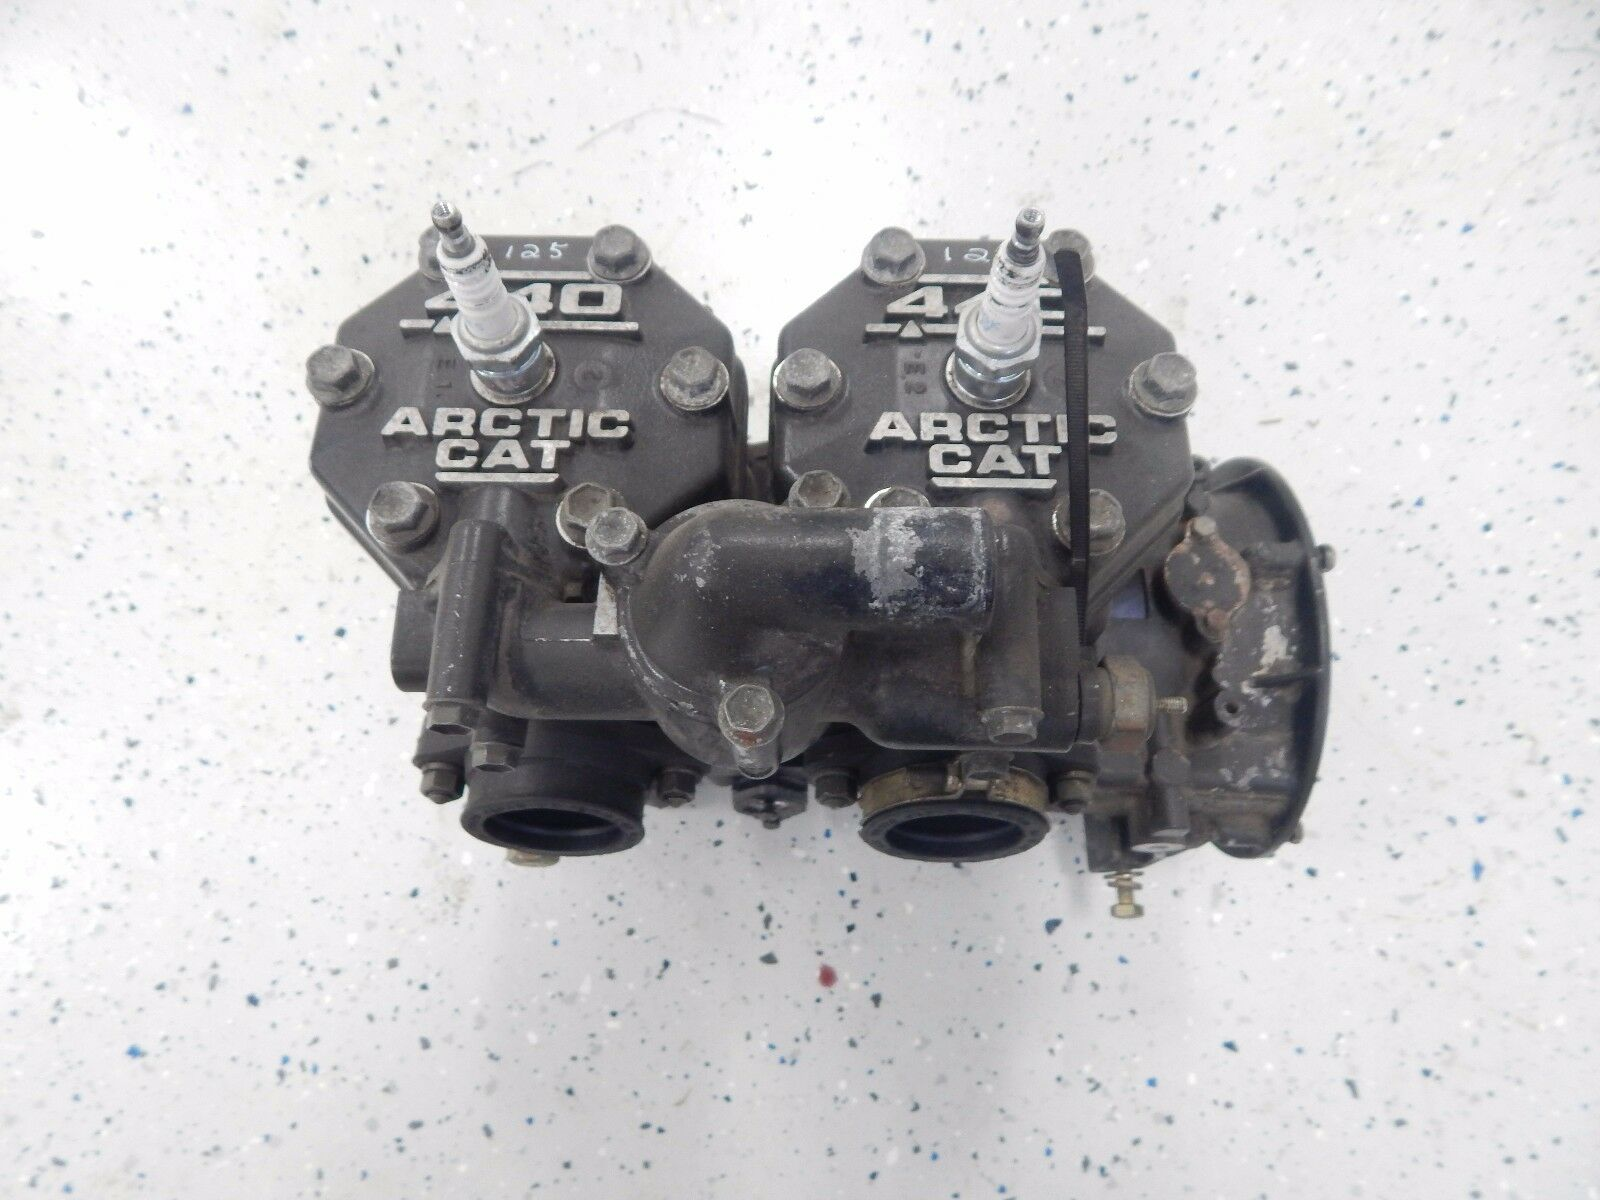 Arctic Cat Snowmobile 1998 Zl 440 Carb Engine Motor 0662 235 Wiring Diagram 1 Of 6only Available